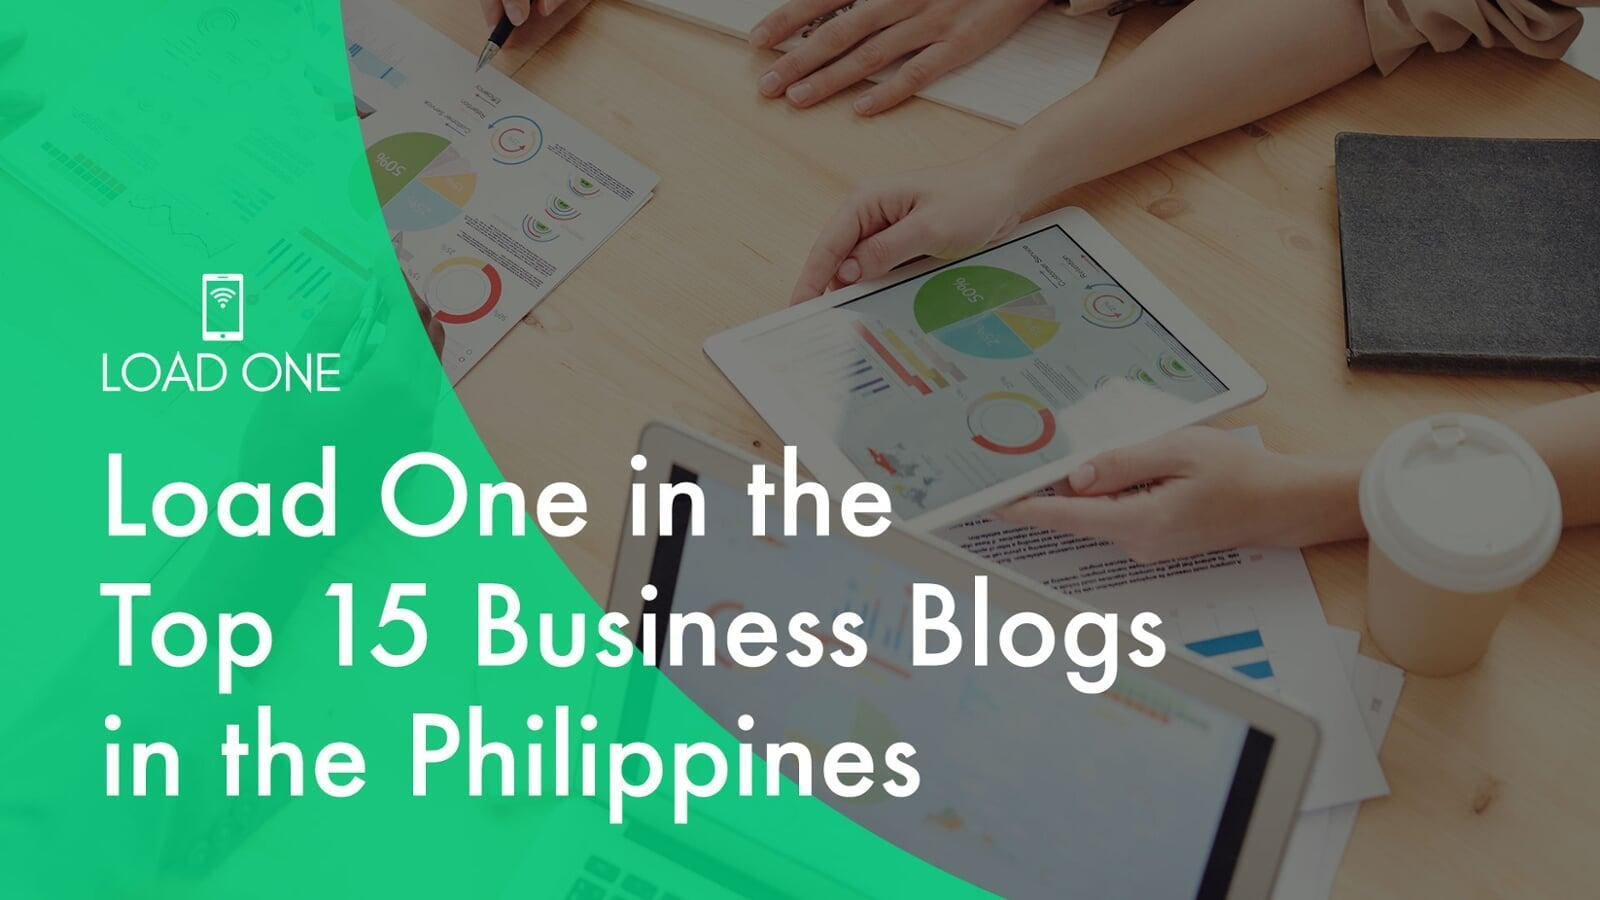 Load One in the Top 15 Business Blogs in the Philippines